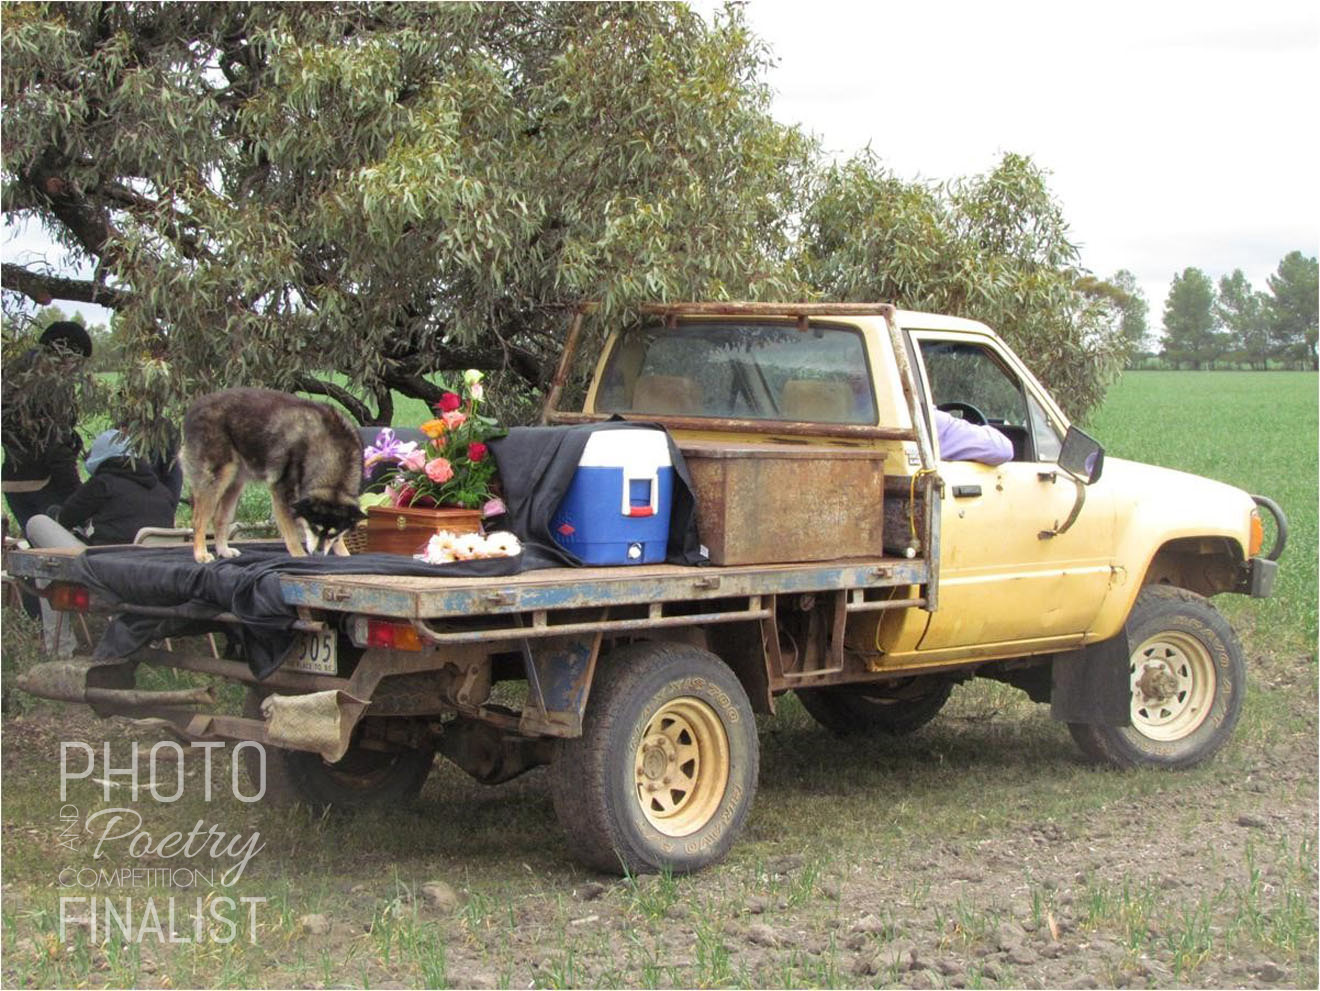 Ute at Willenabrina - The photo of the ute is when we scattered my aunt's ashes at the farm my mother grew up on in Willenabrina (just outside Warracknabeal). The dog was my aunt's dog, the ashes were in the box and the drinks were in the esky. JULIANNE BRYCE, Melbourne, VIC